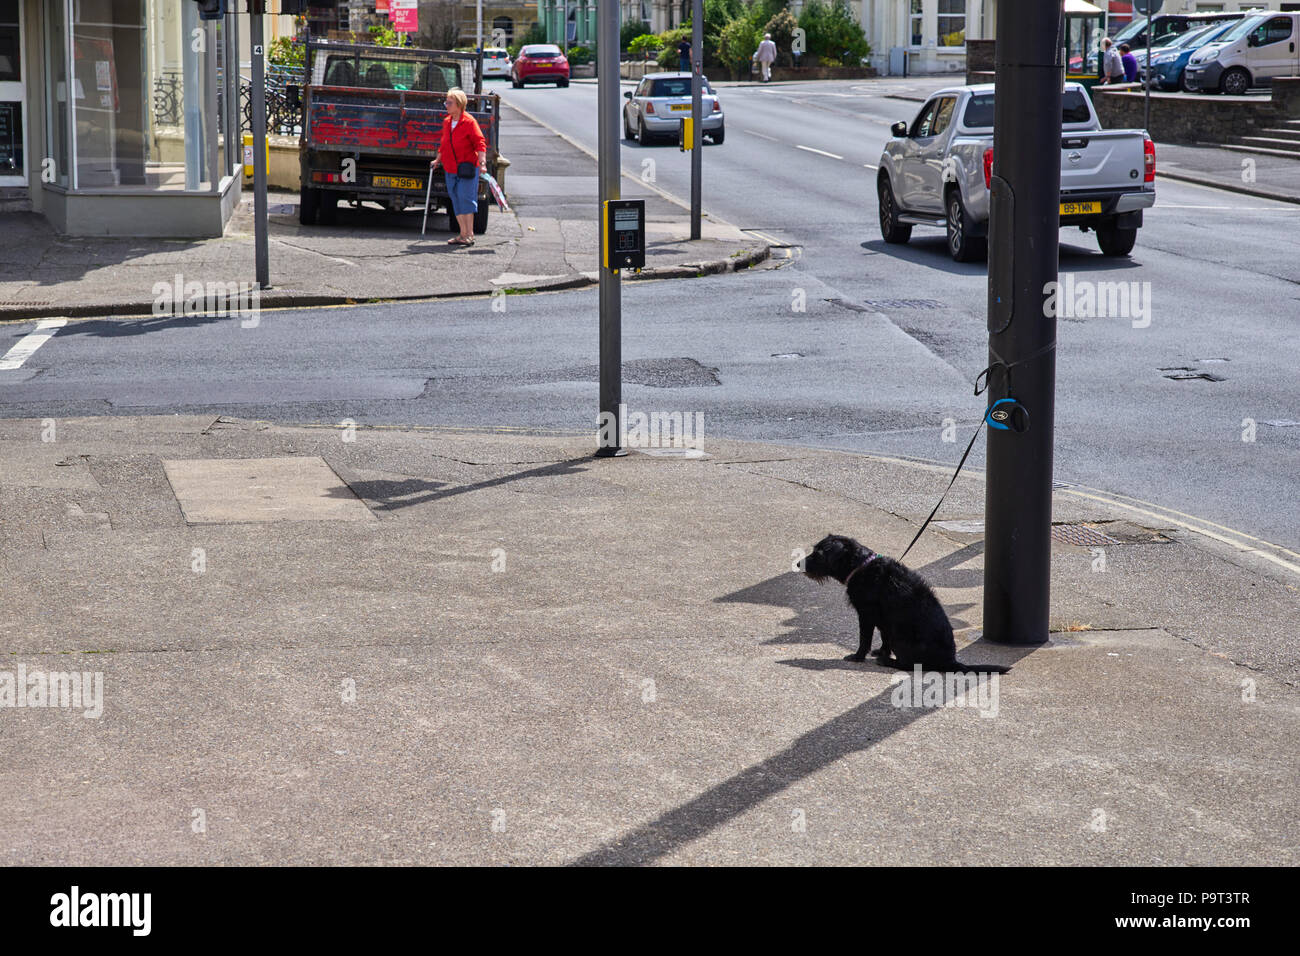 A small black dog tied up to a lampost outside a shop in the full sun and unable to lie down in Douglas, Isle of Man - Stock Image